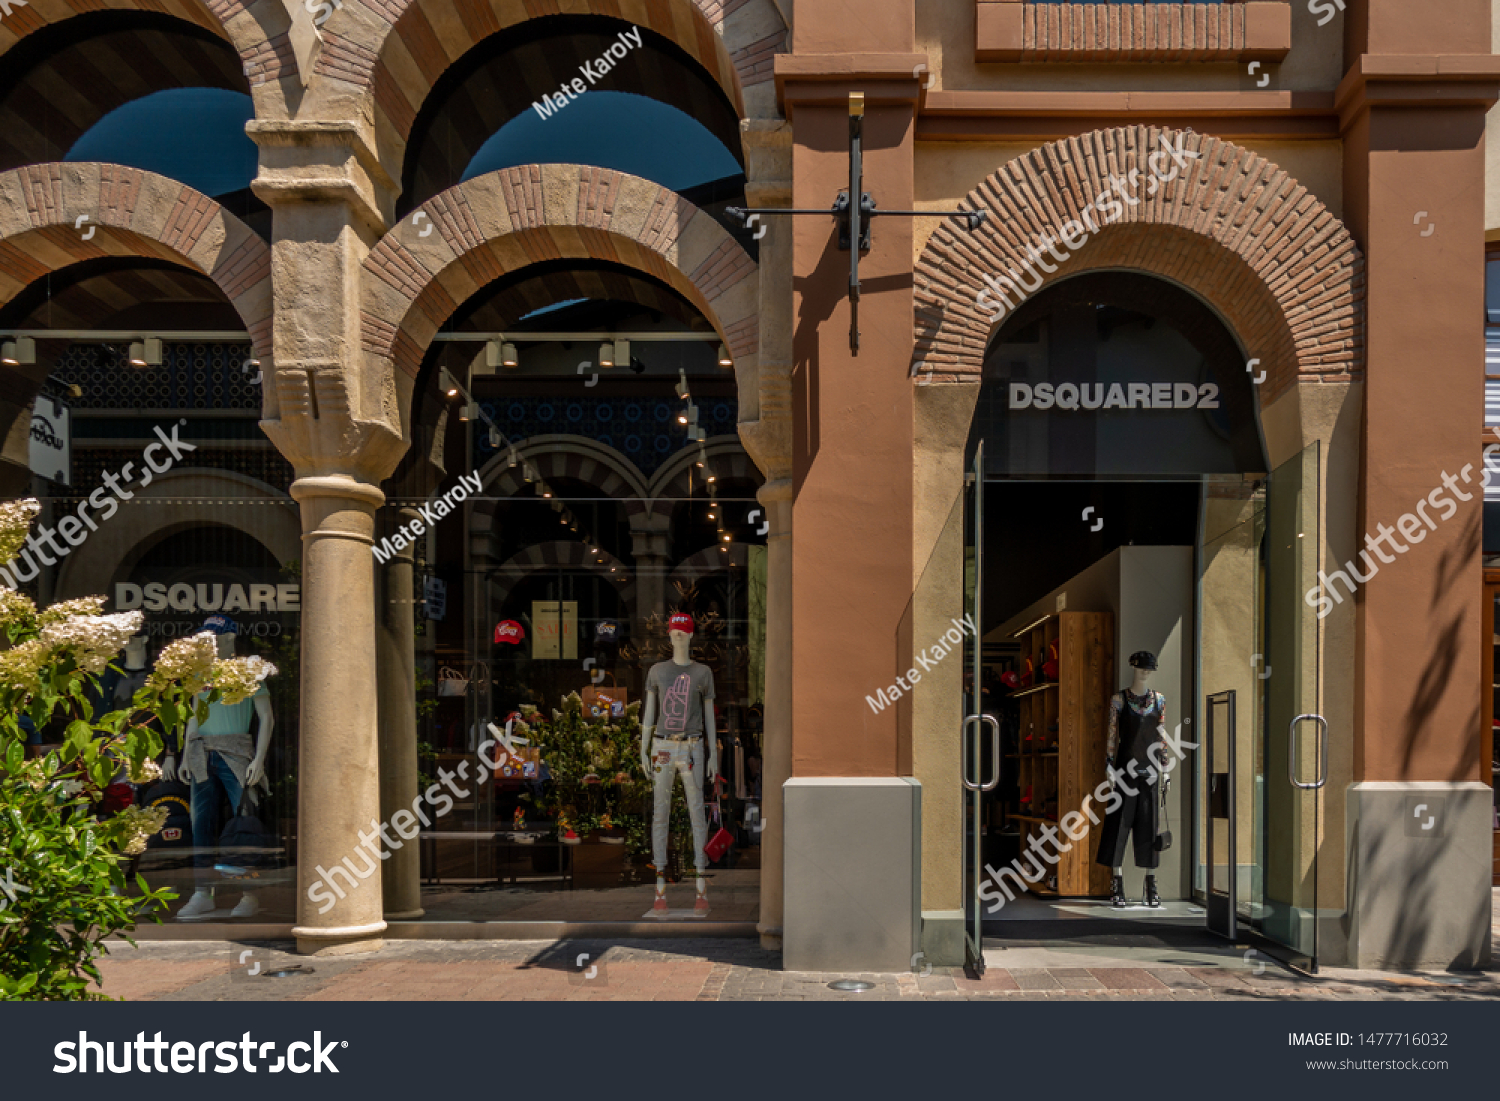 dsquared factory outlet italy